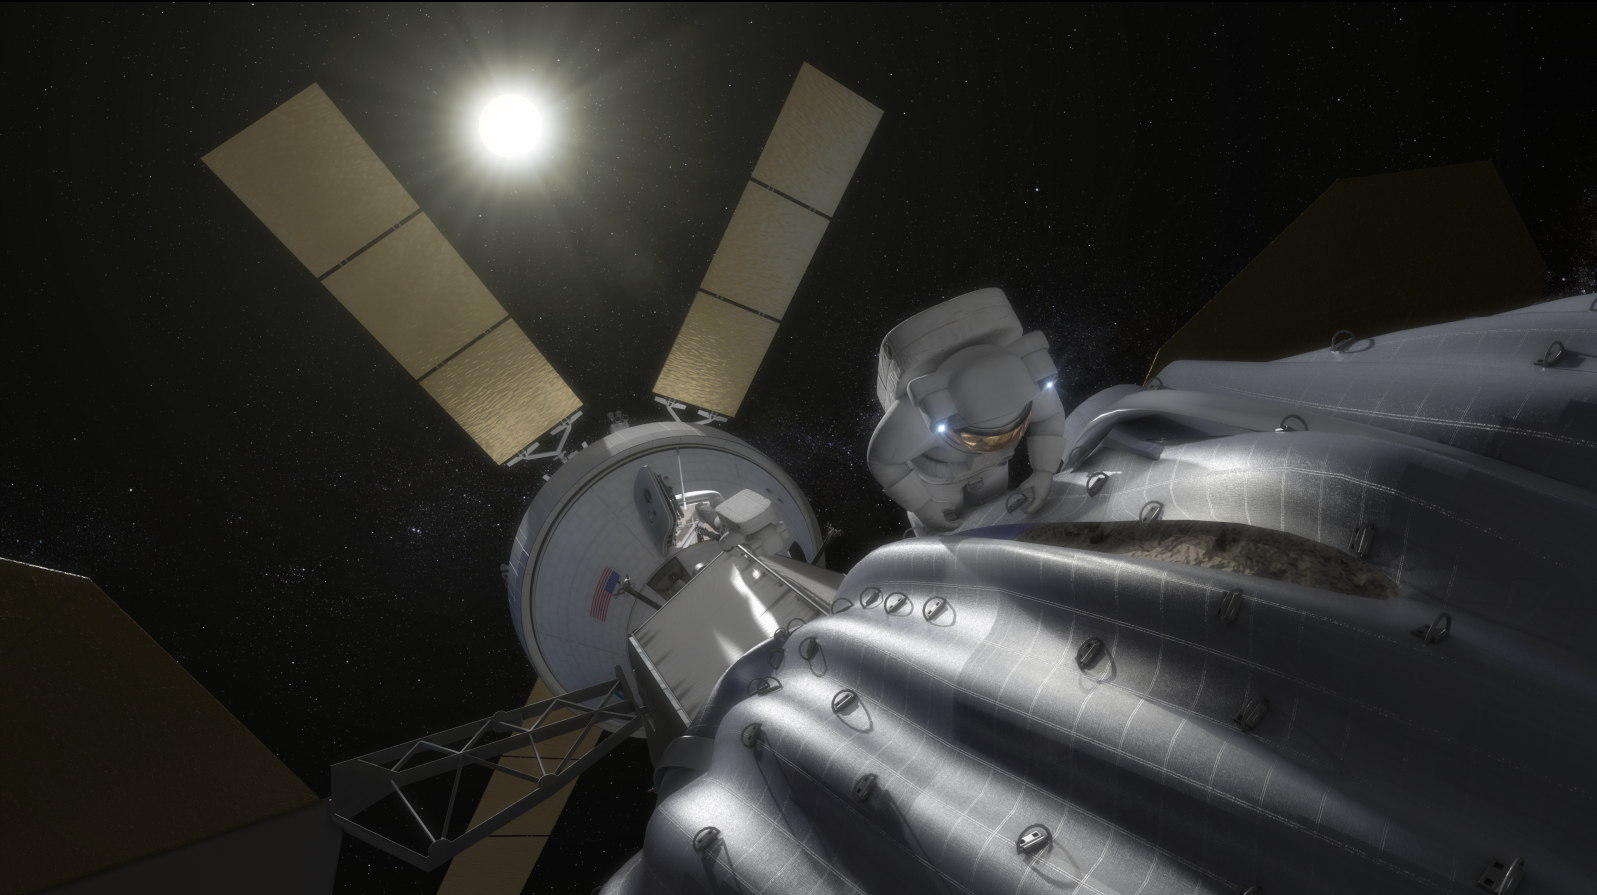 NASA's Asteroid-Capture Mission Won't Help Astronauts Reach Mars: Scientist